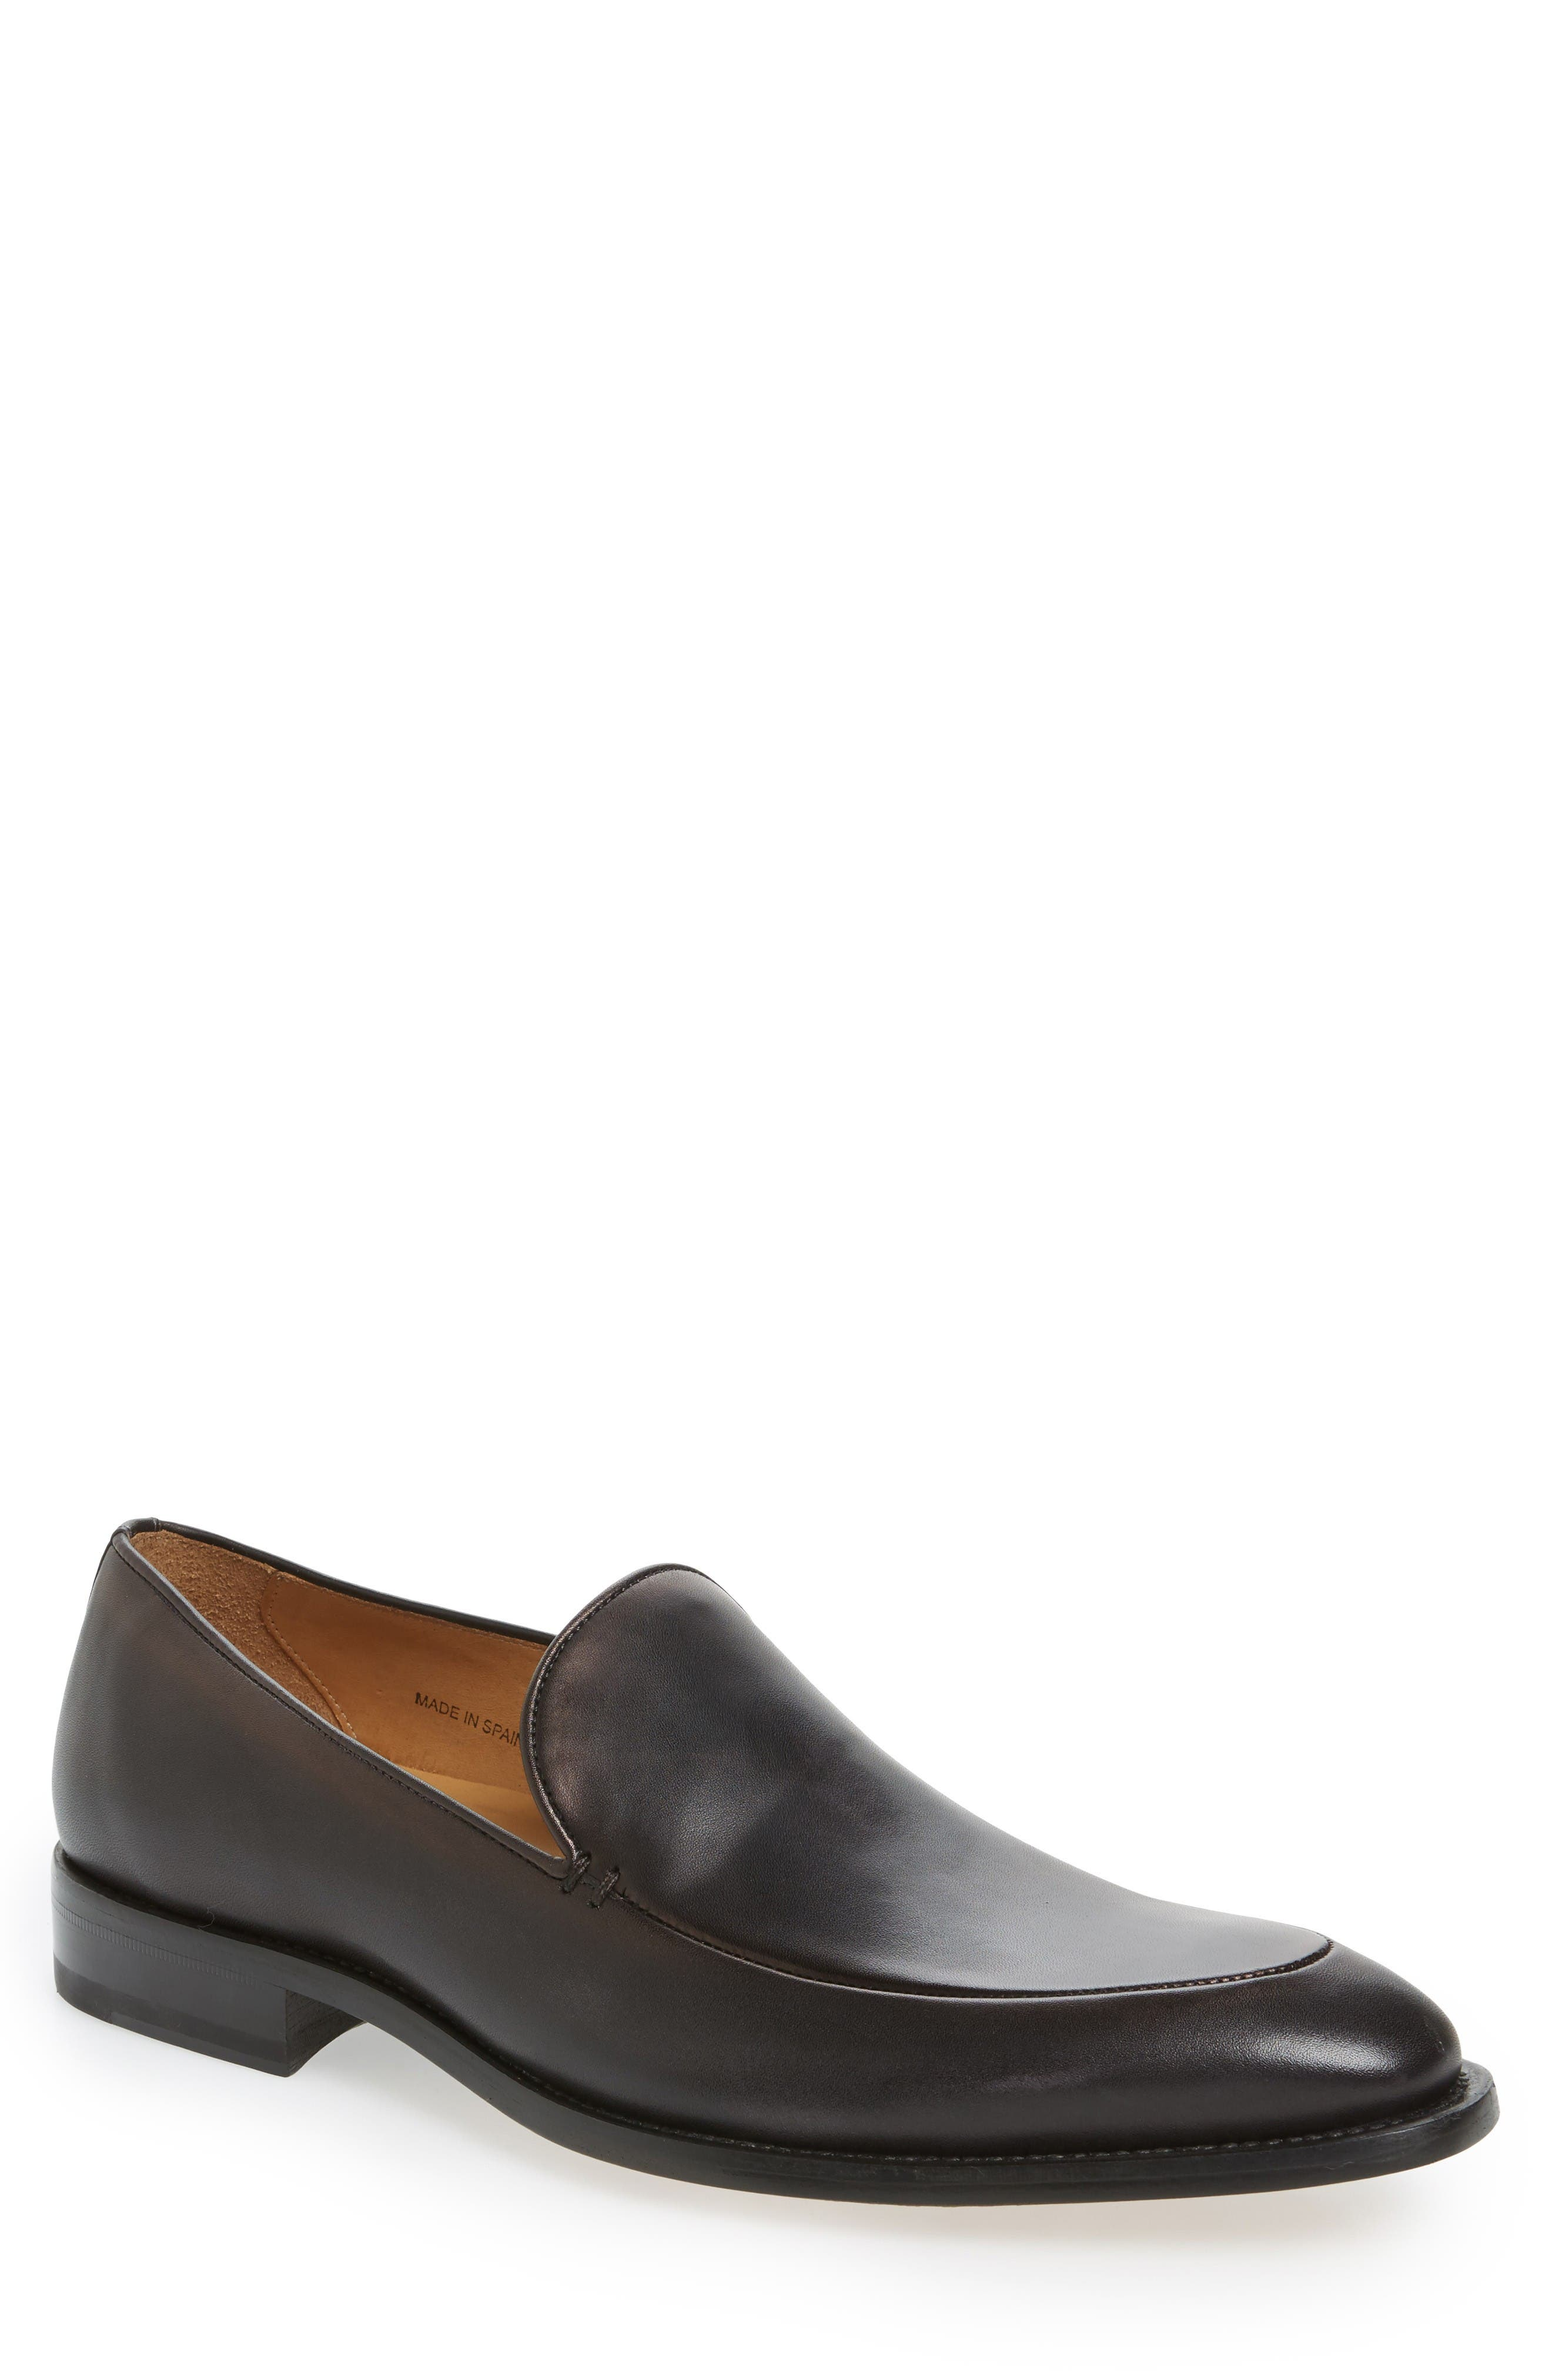 Strauss Venetian Loafer,                         Main,                         color, Graphite Leather